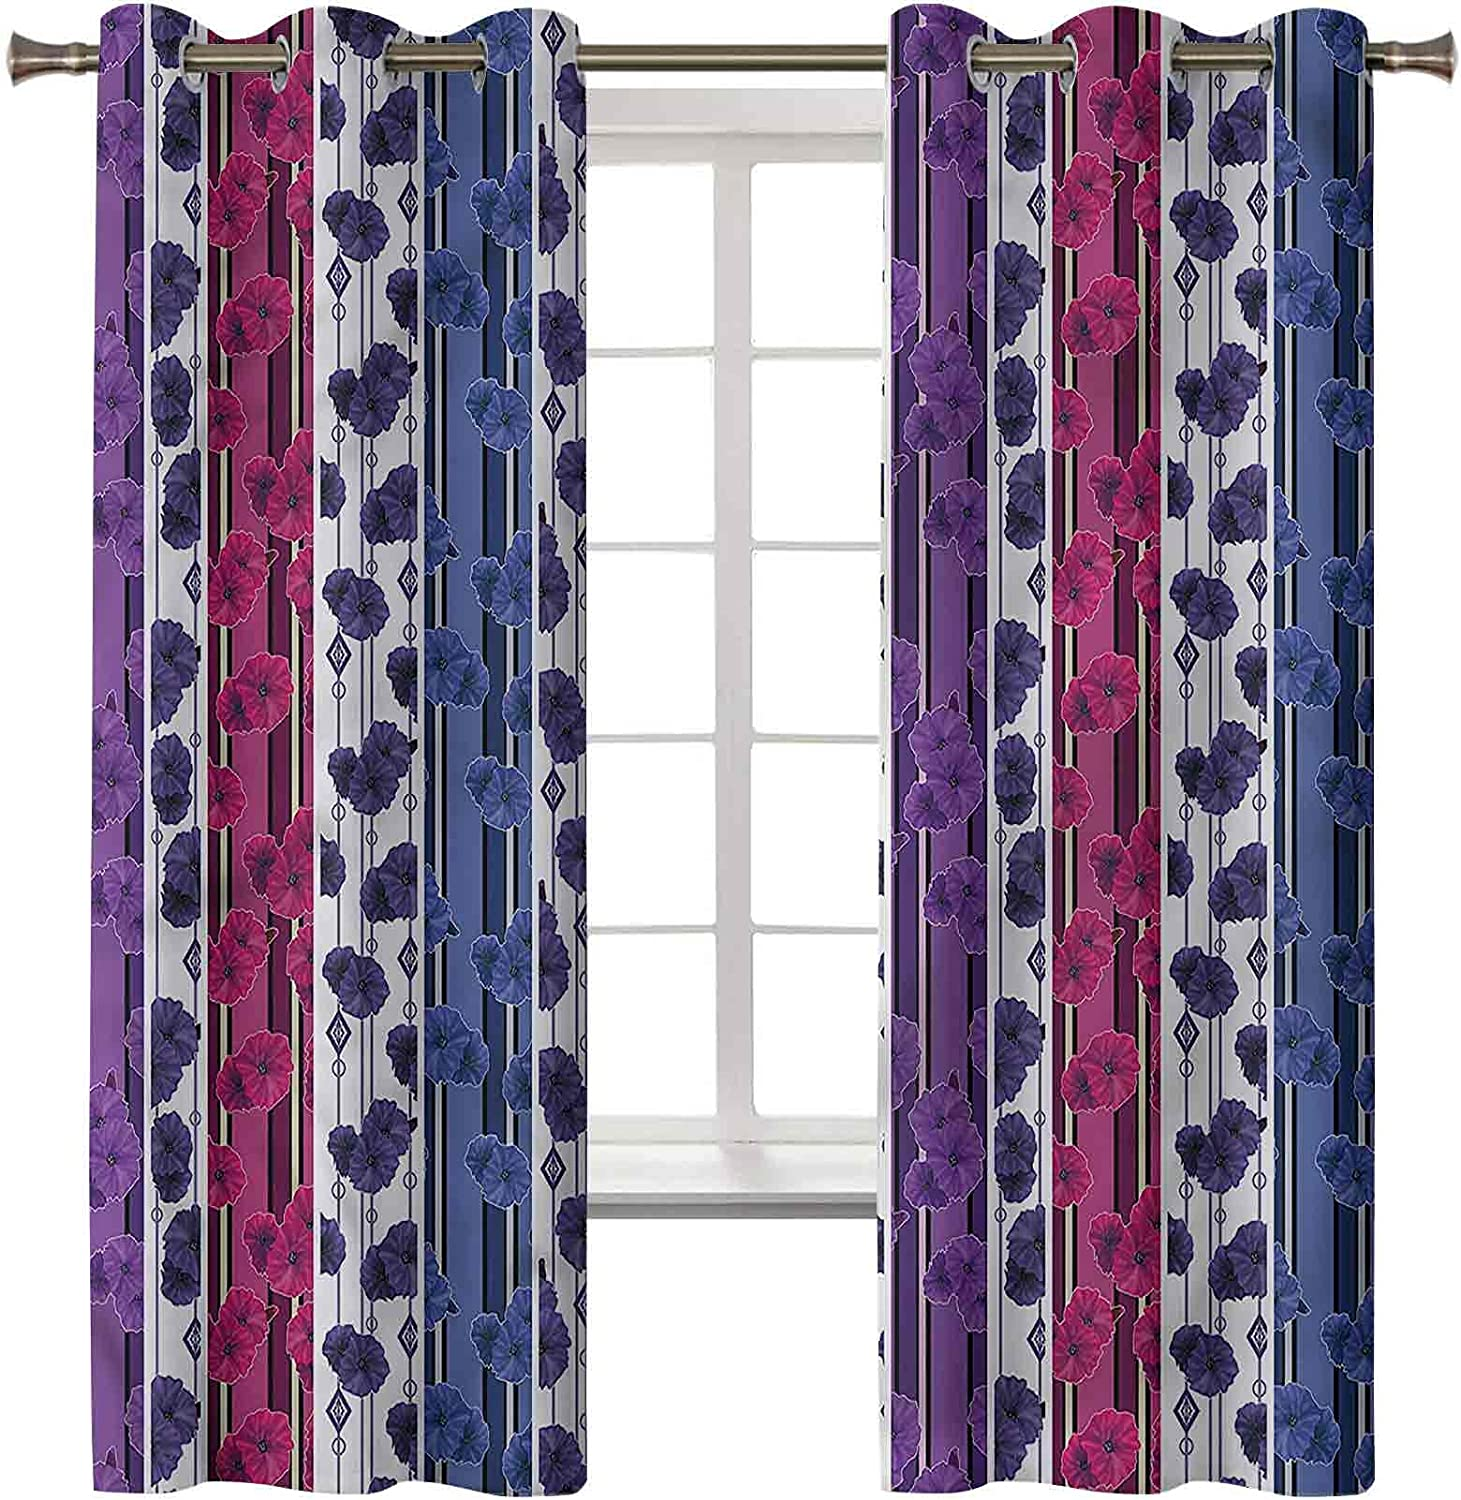 Striped Blackout sold out Curtains for Bedroom Set of 2 Panels x 45L 38W Classic